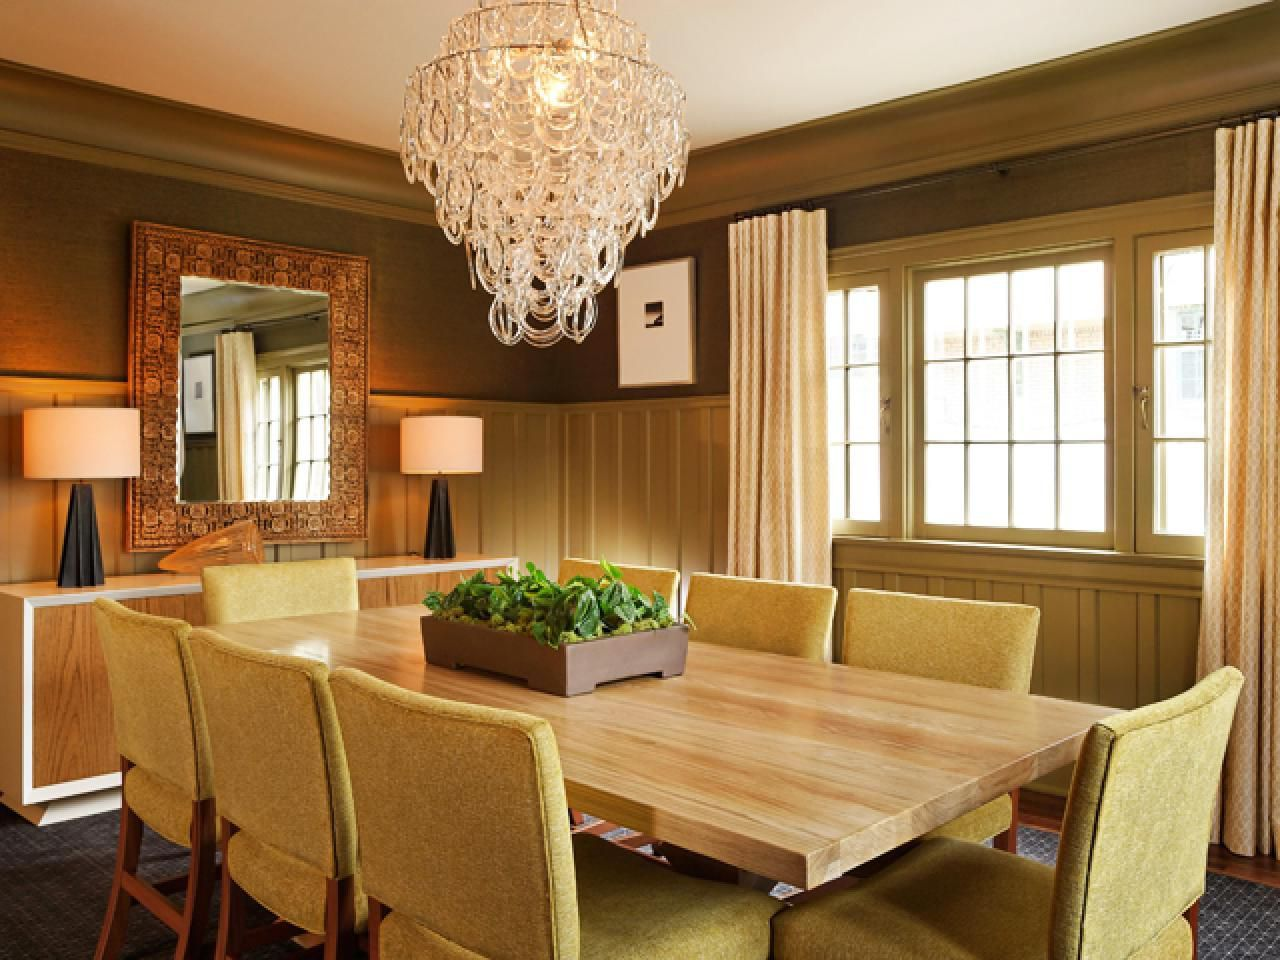 Stunning Dining Room Chandelier Hanging In The Ceiling